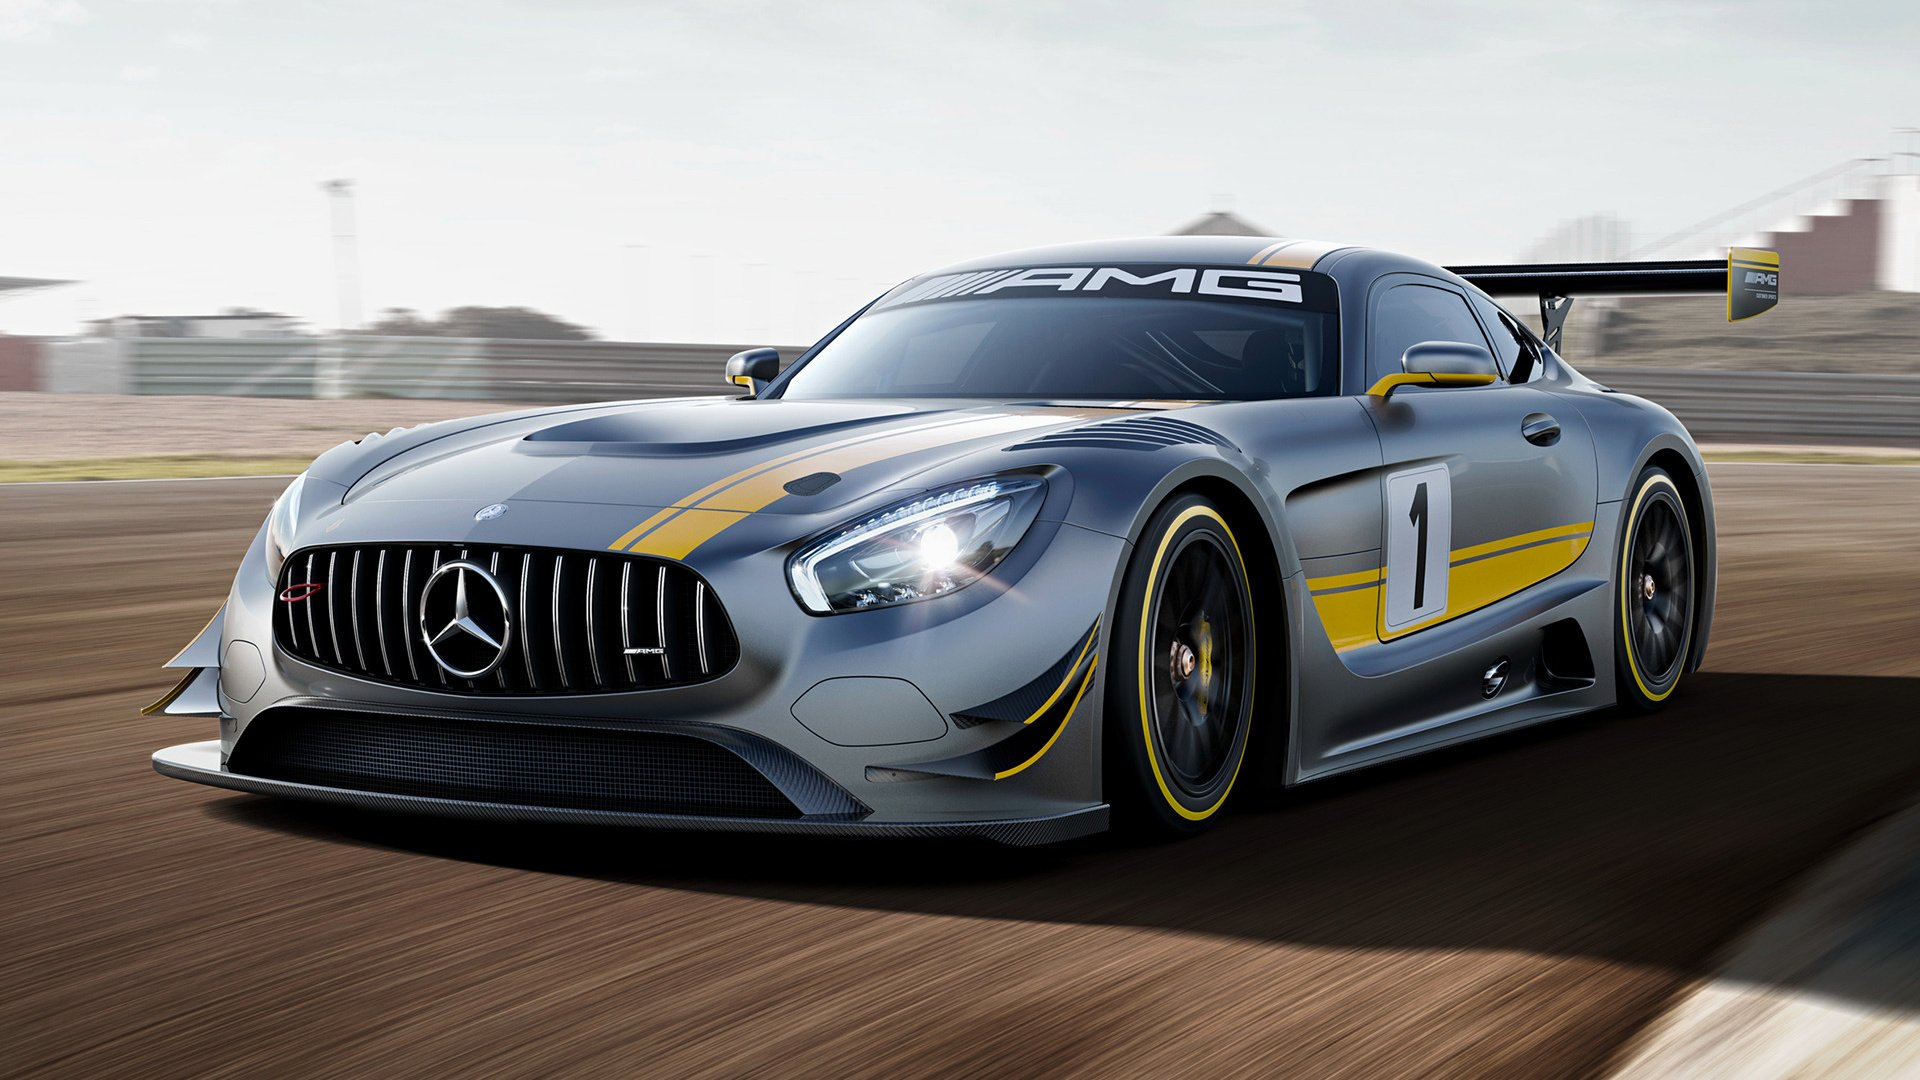 Mercedes-AMG GT GT3 Coming to iRacing - Inside Sim Racing